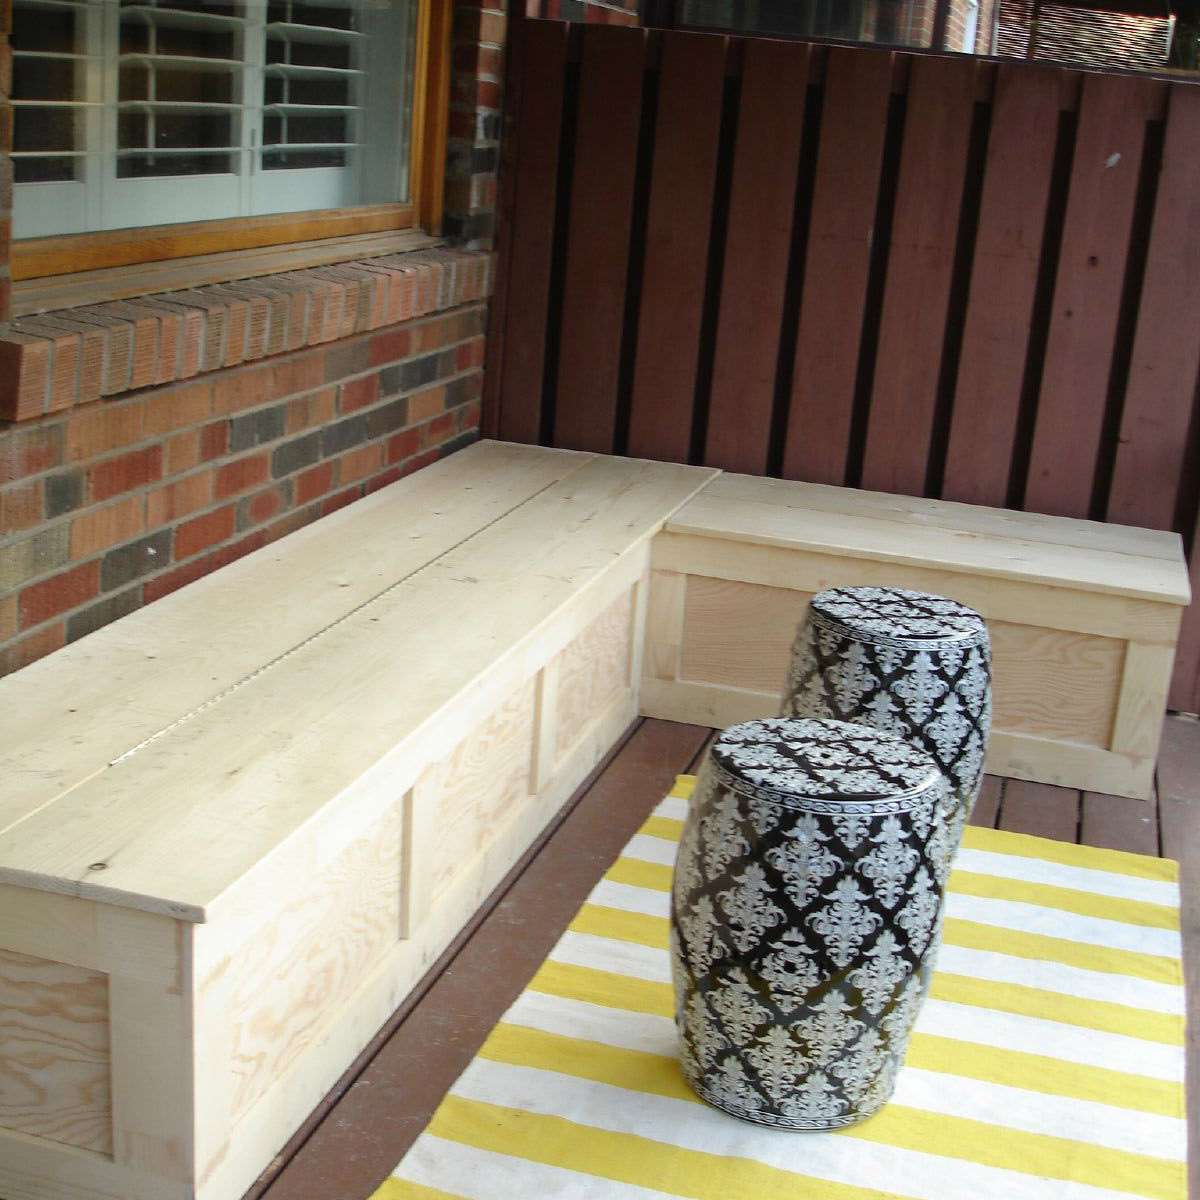 An outdoor bench and yellow rug